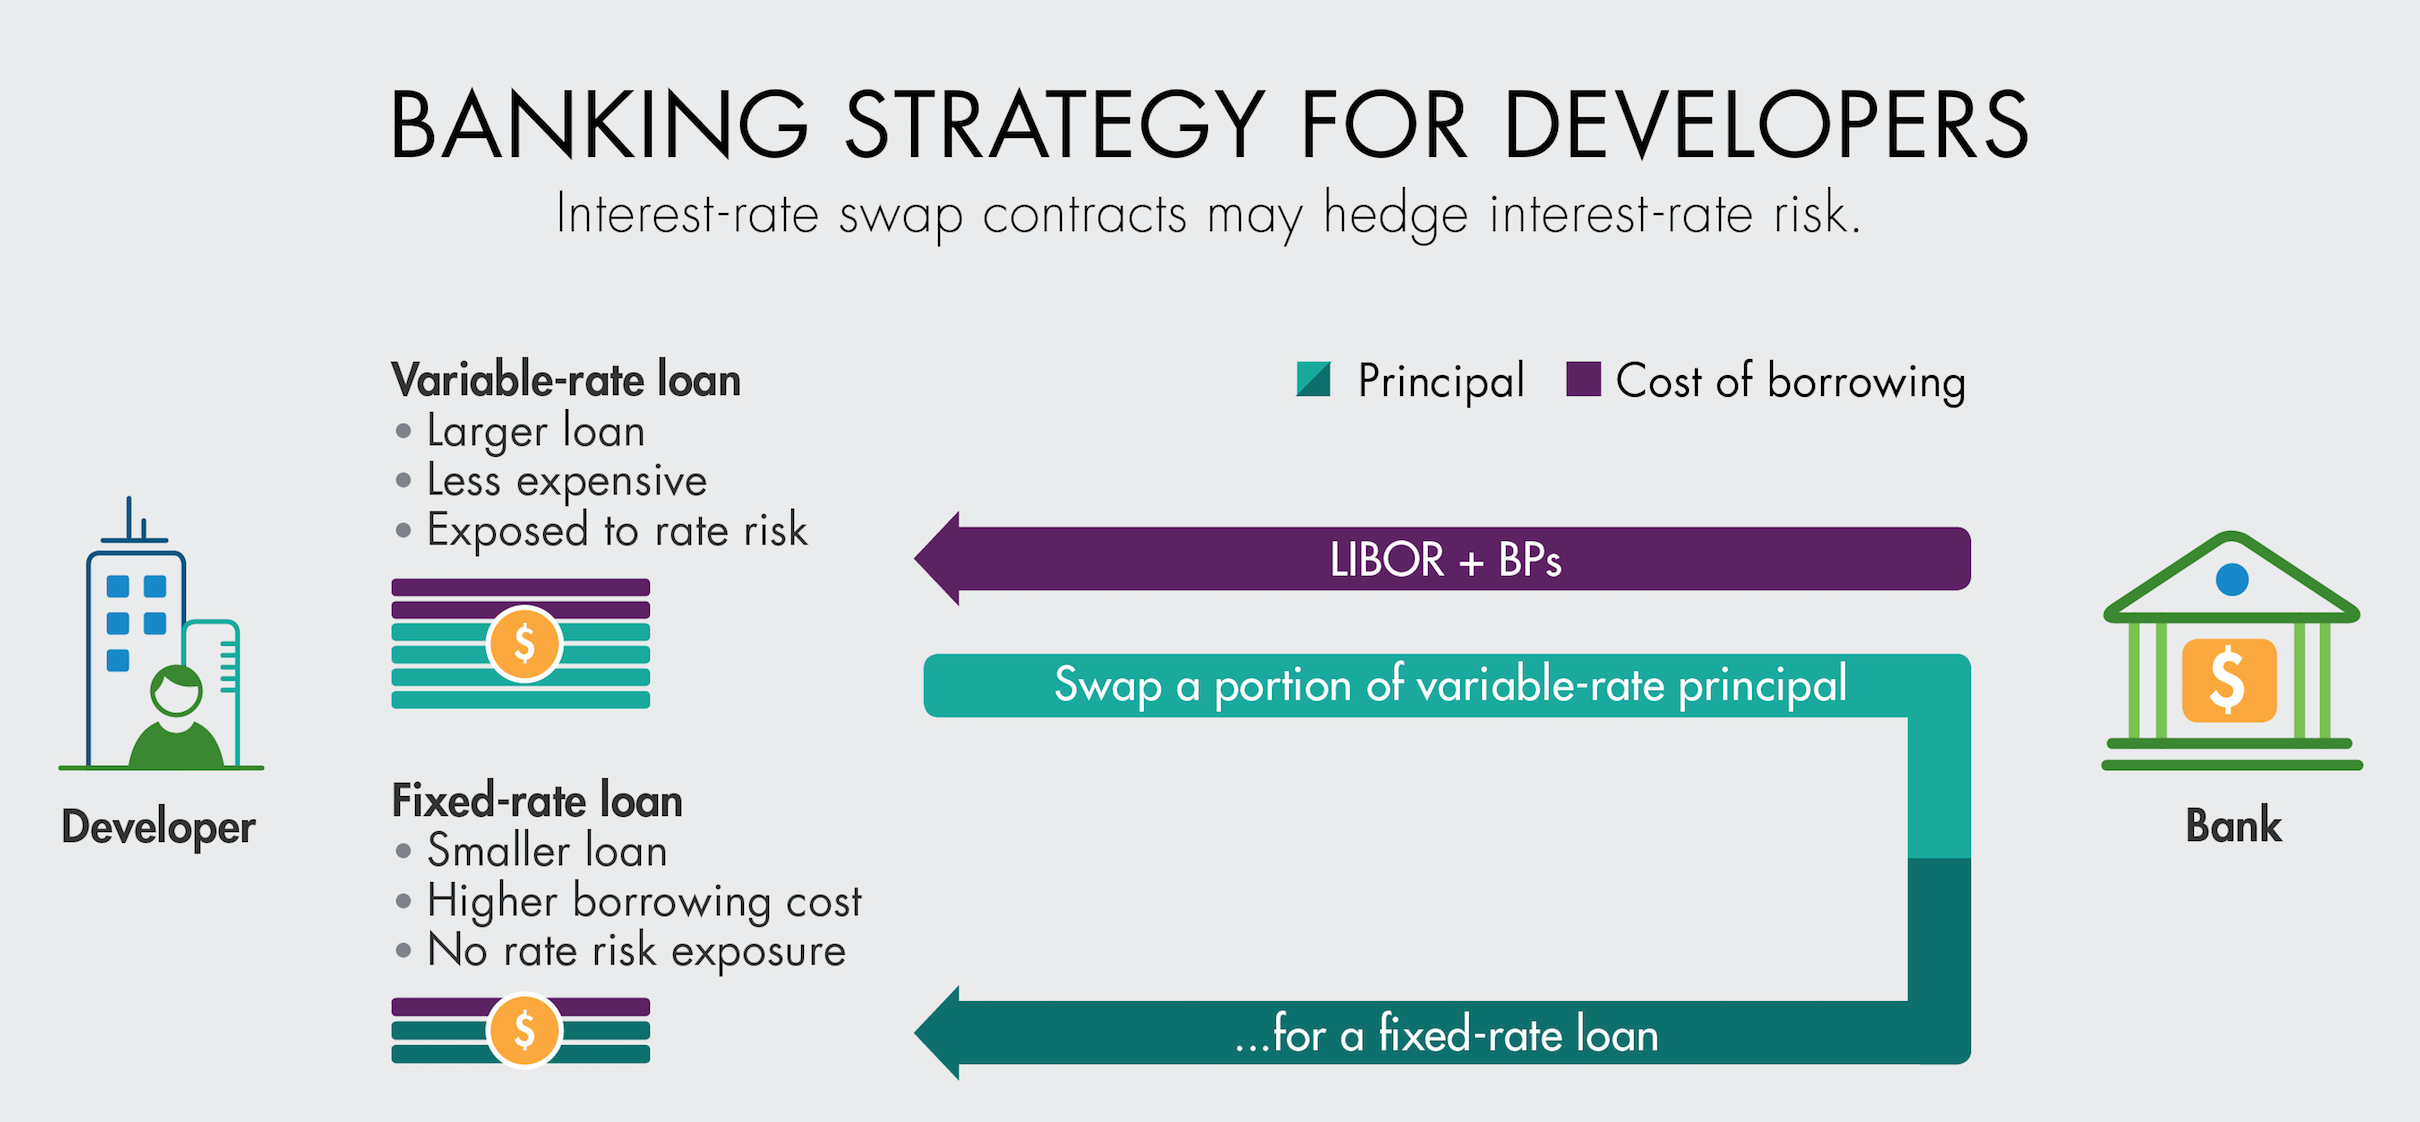 Banking Strategy for Developers